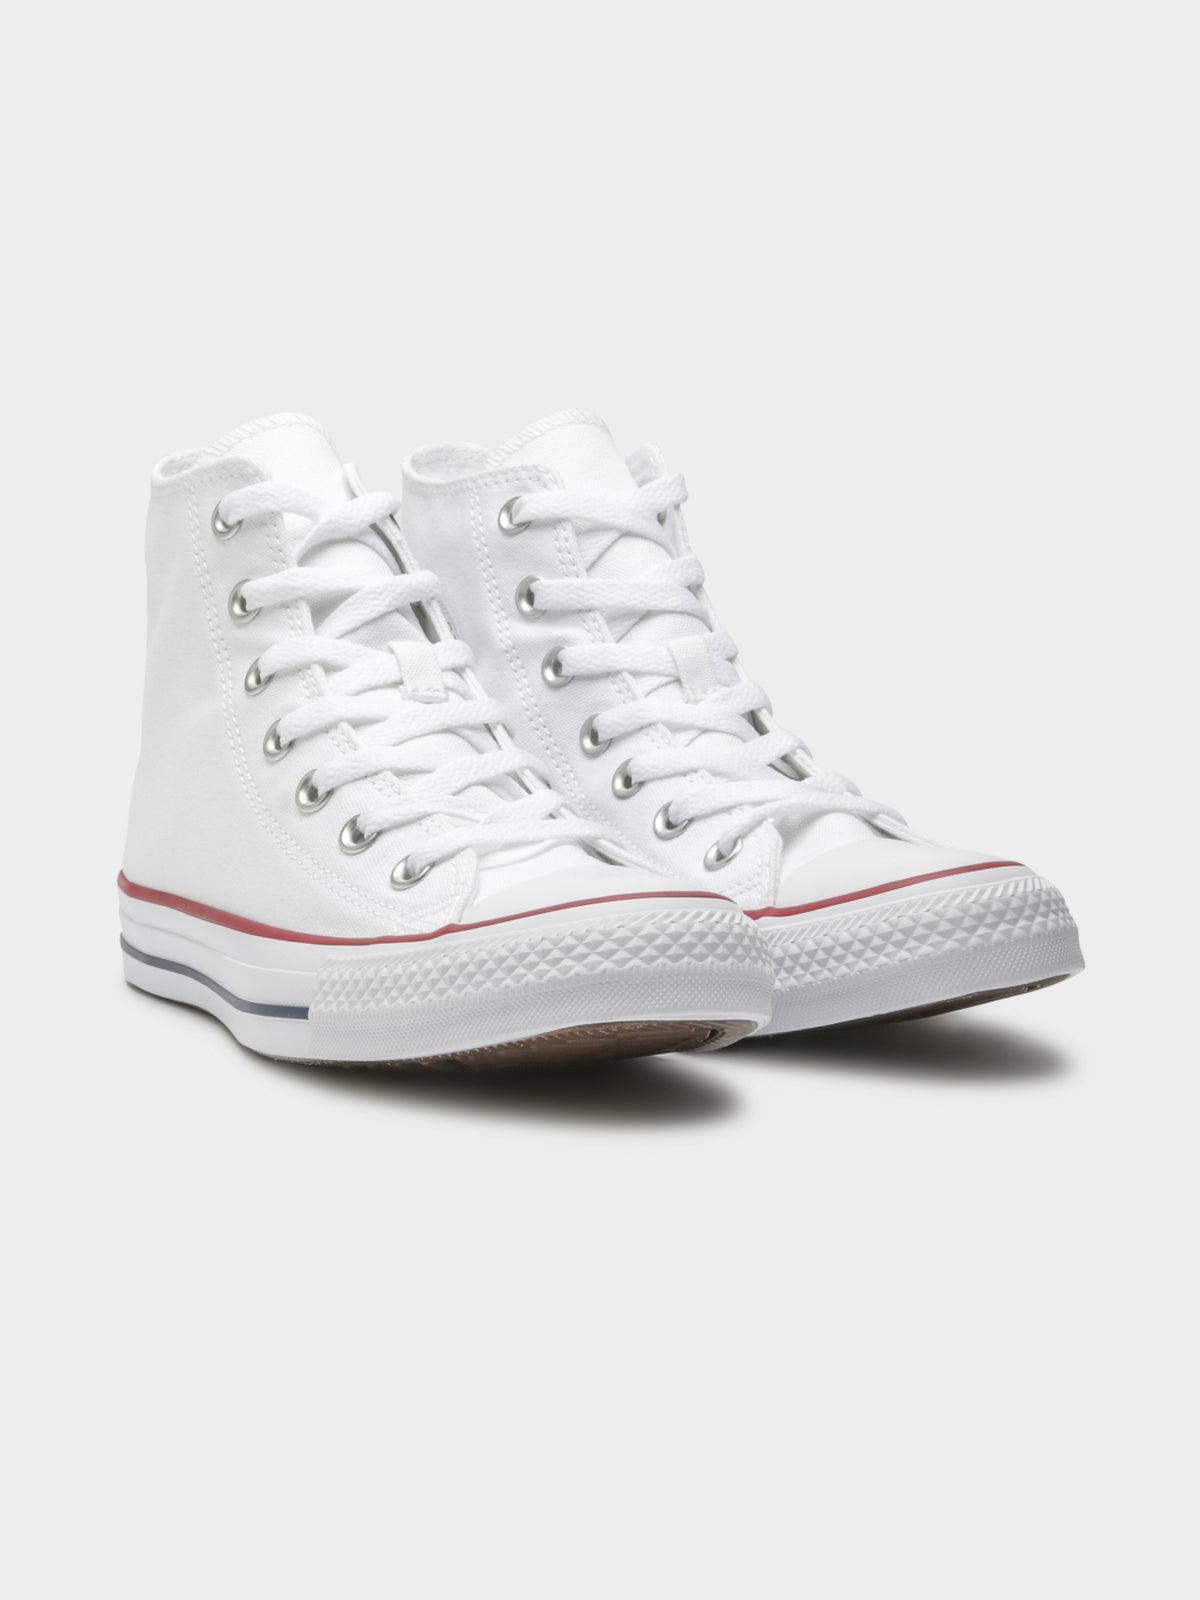 Unisex Chuck Taylor All Star High Top Sneakers in Optic White